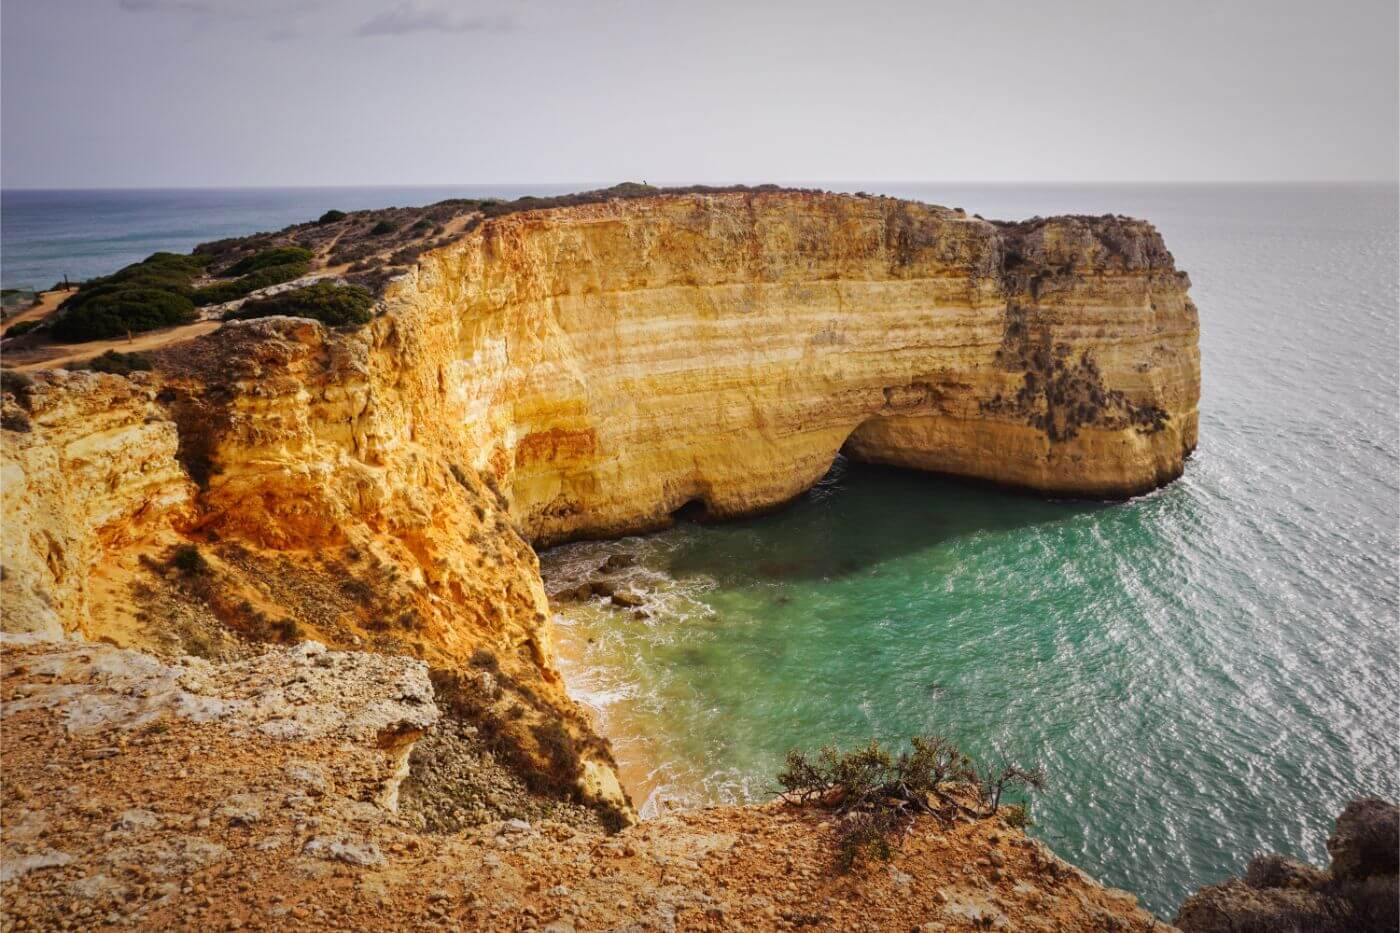 Trail of Headlands - Algarve in November, Portugal